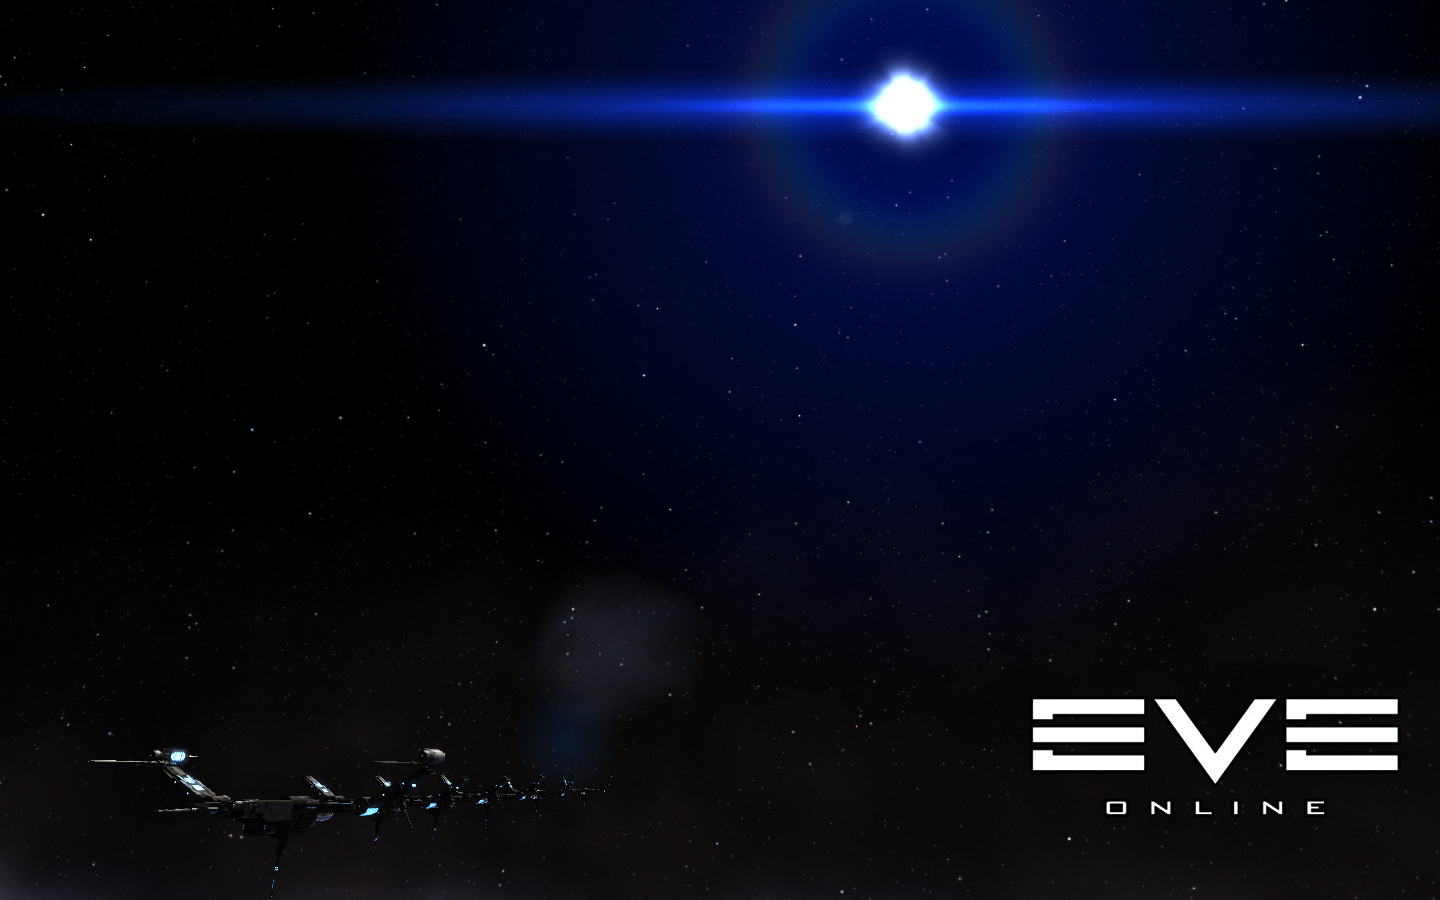 video Games eve online HD Wallpaper